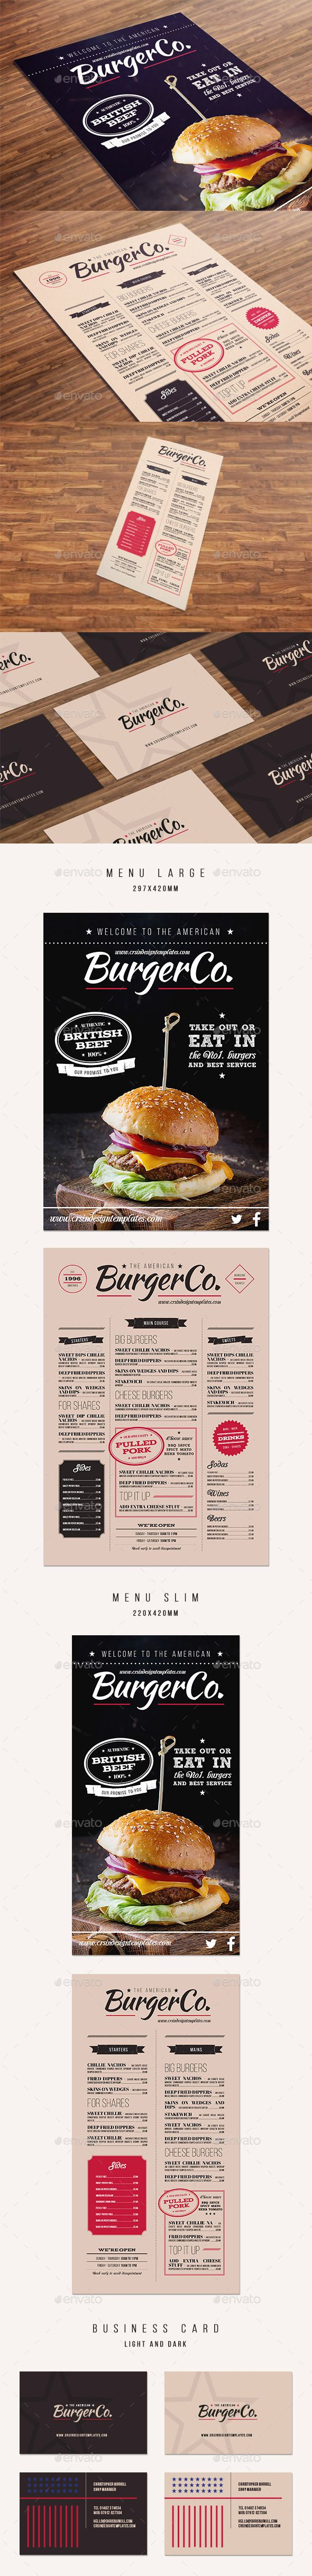 206 best diner project images on pinterest menu cards menu layout